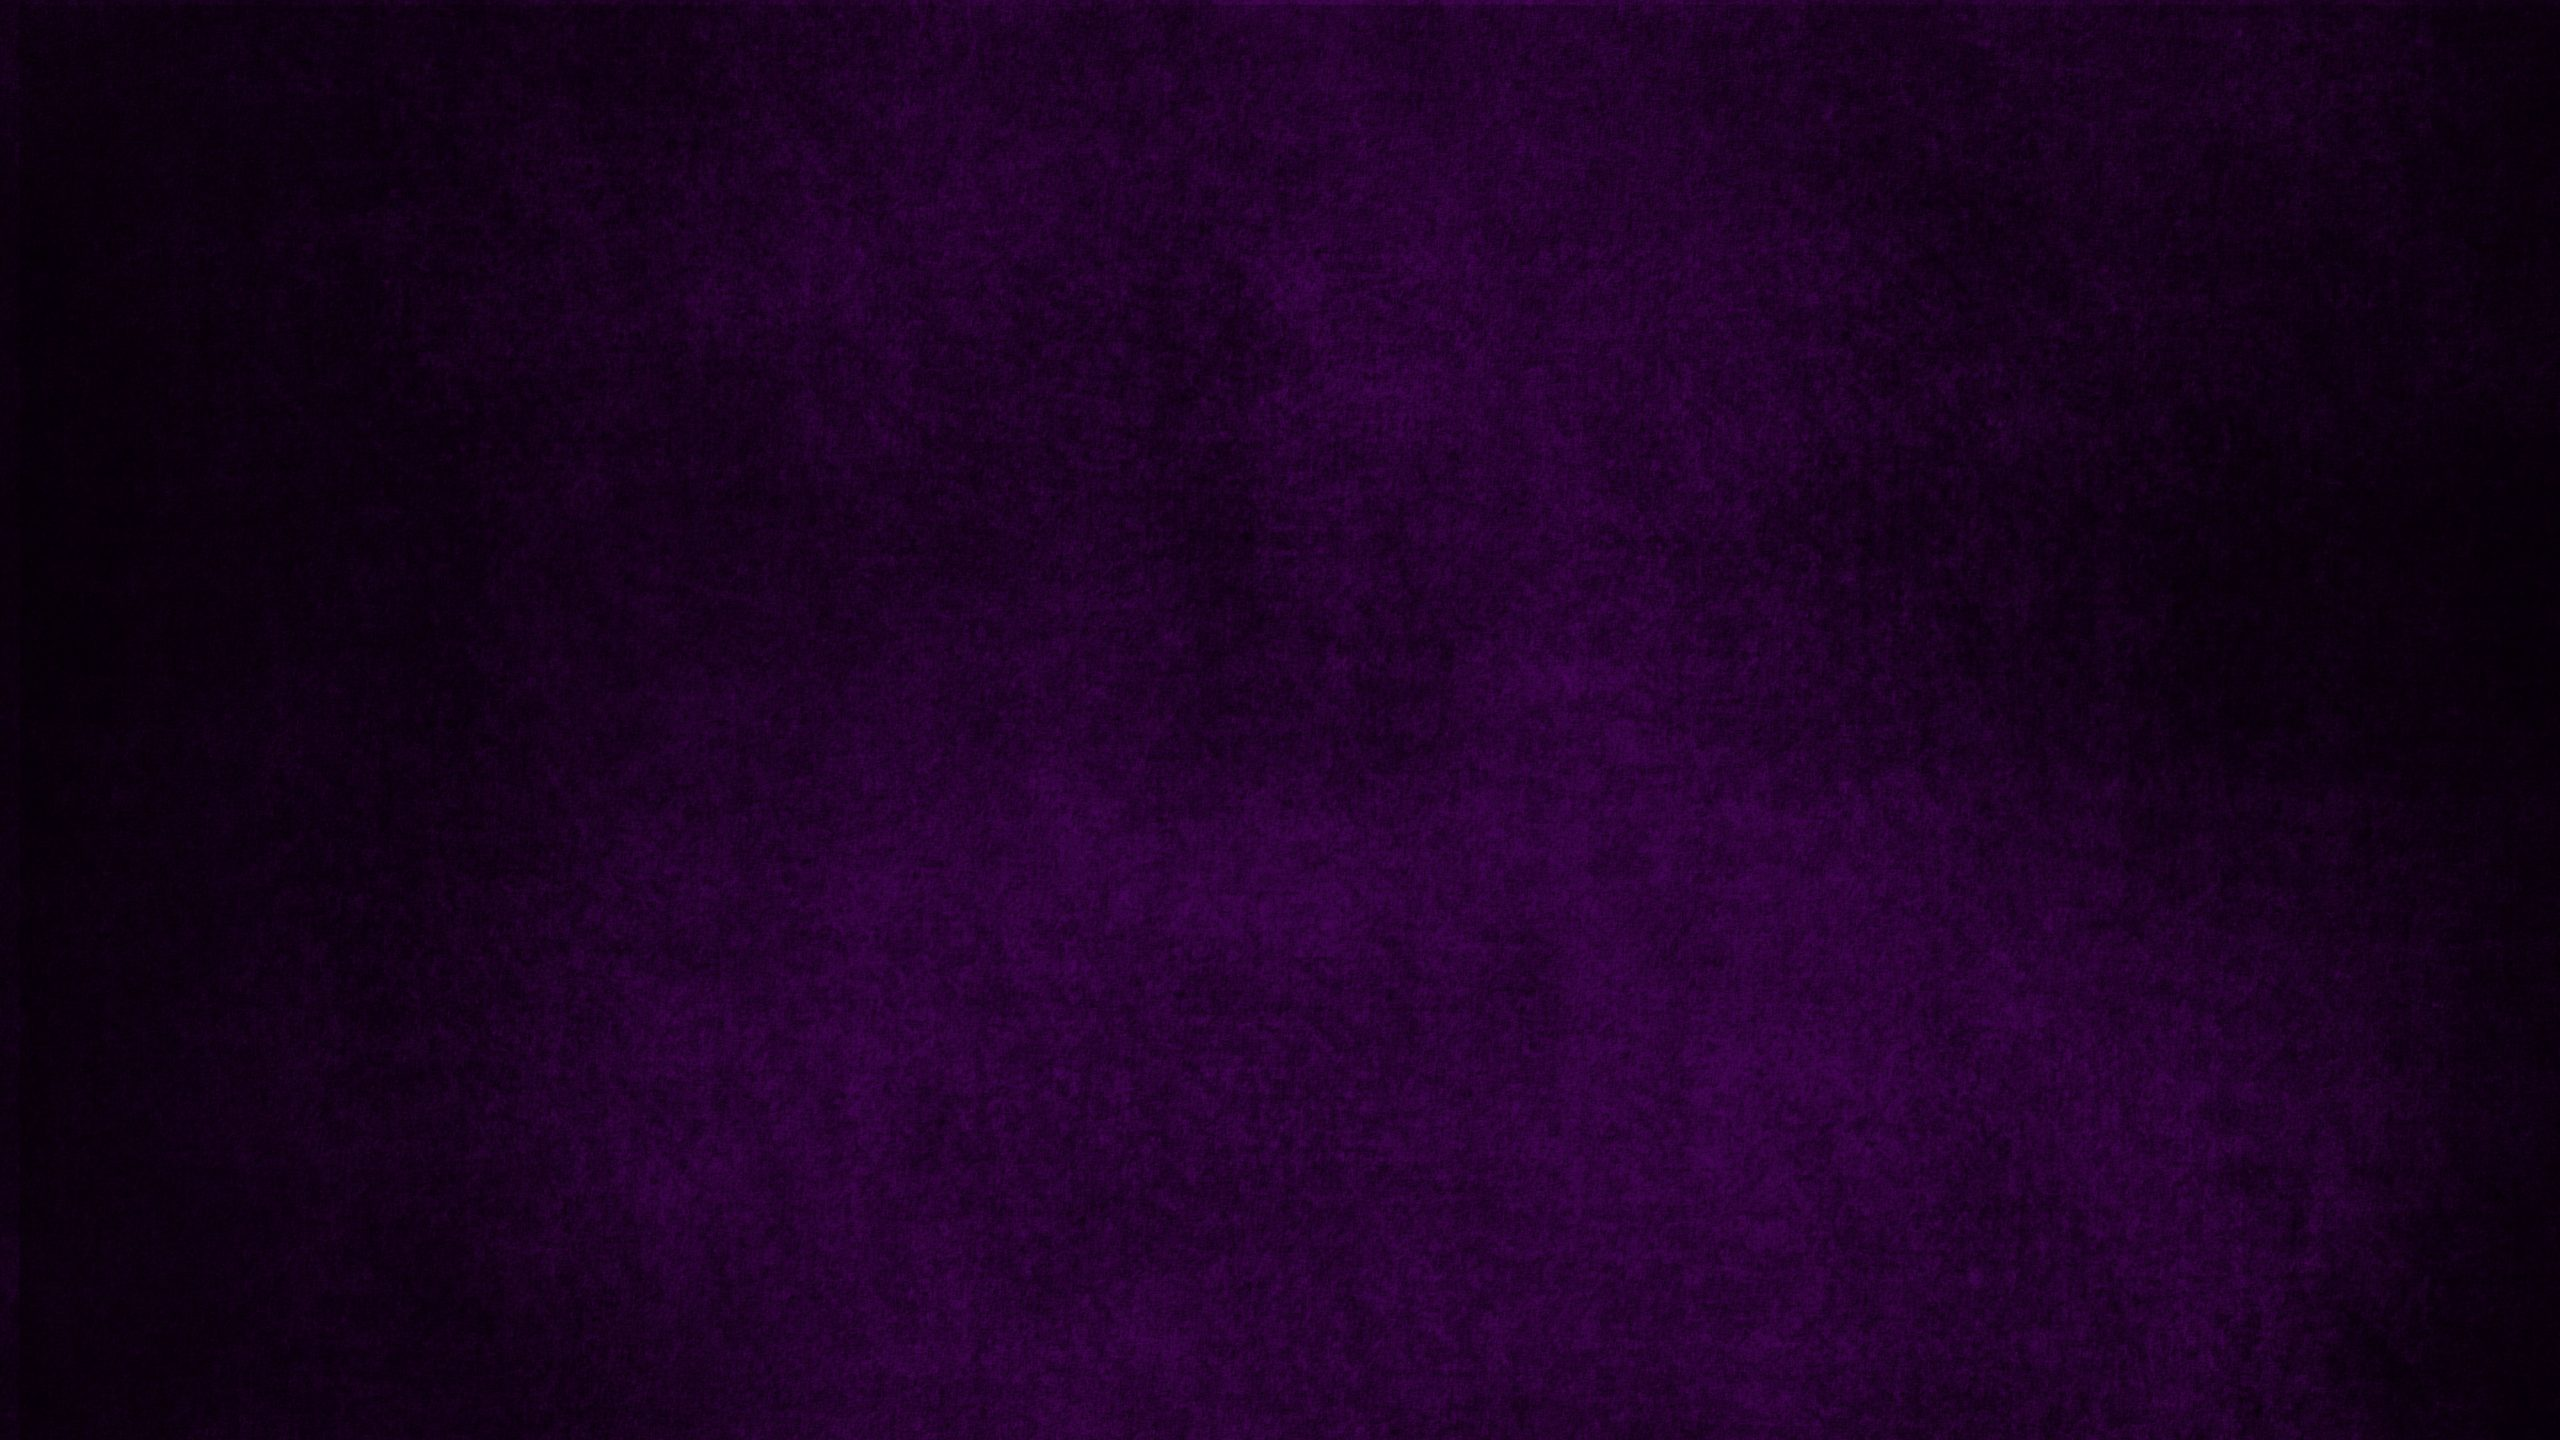 purple-black-background